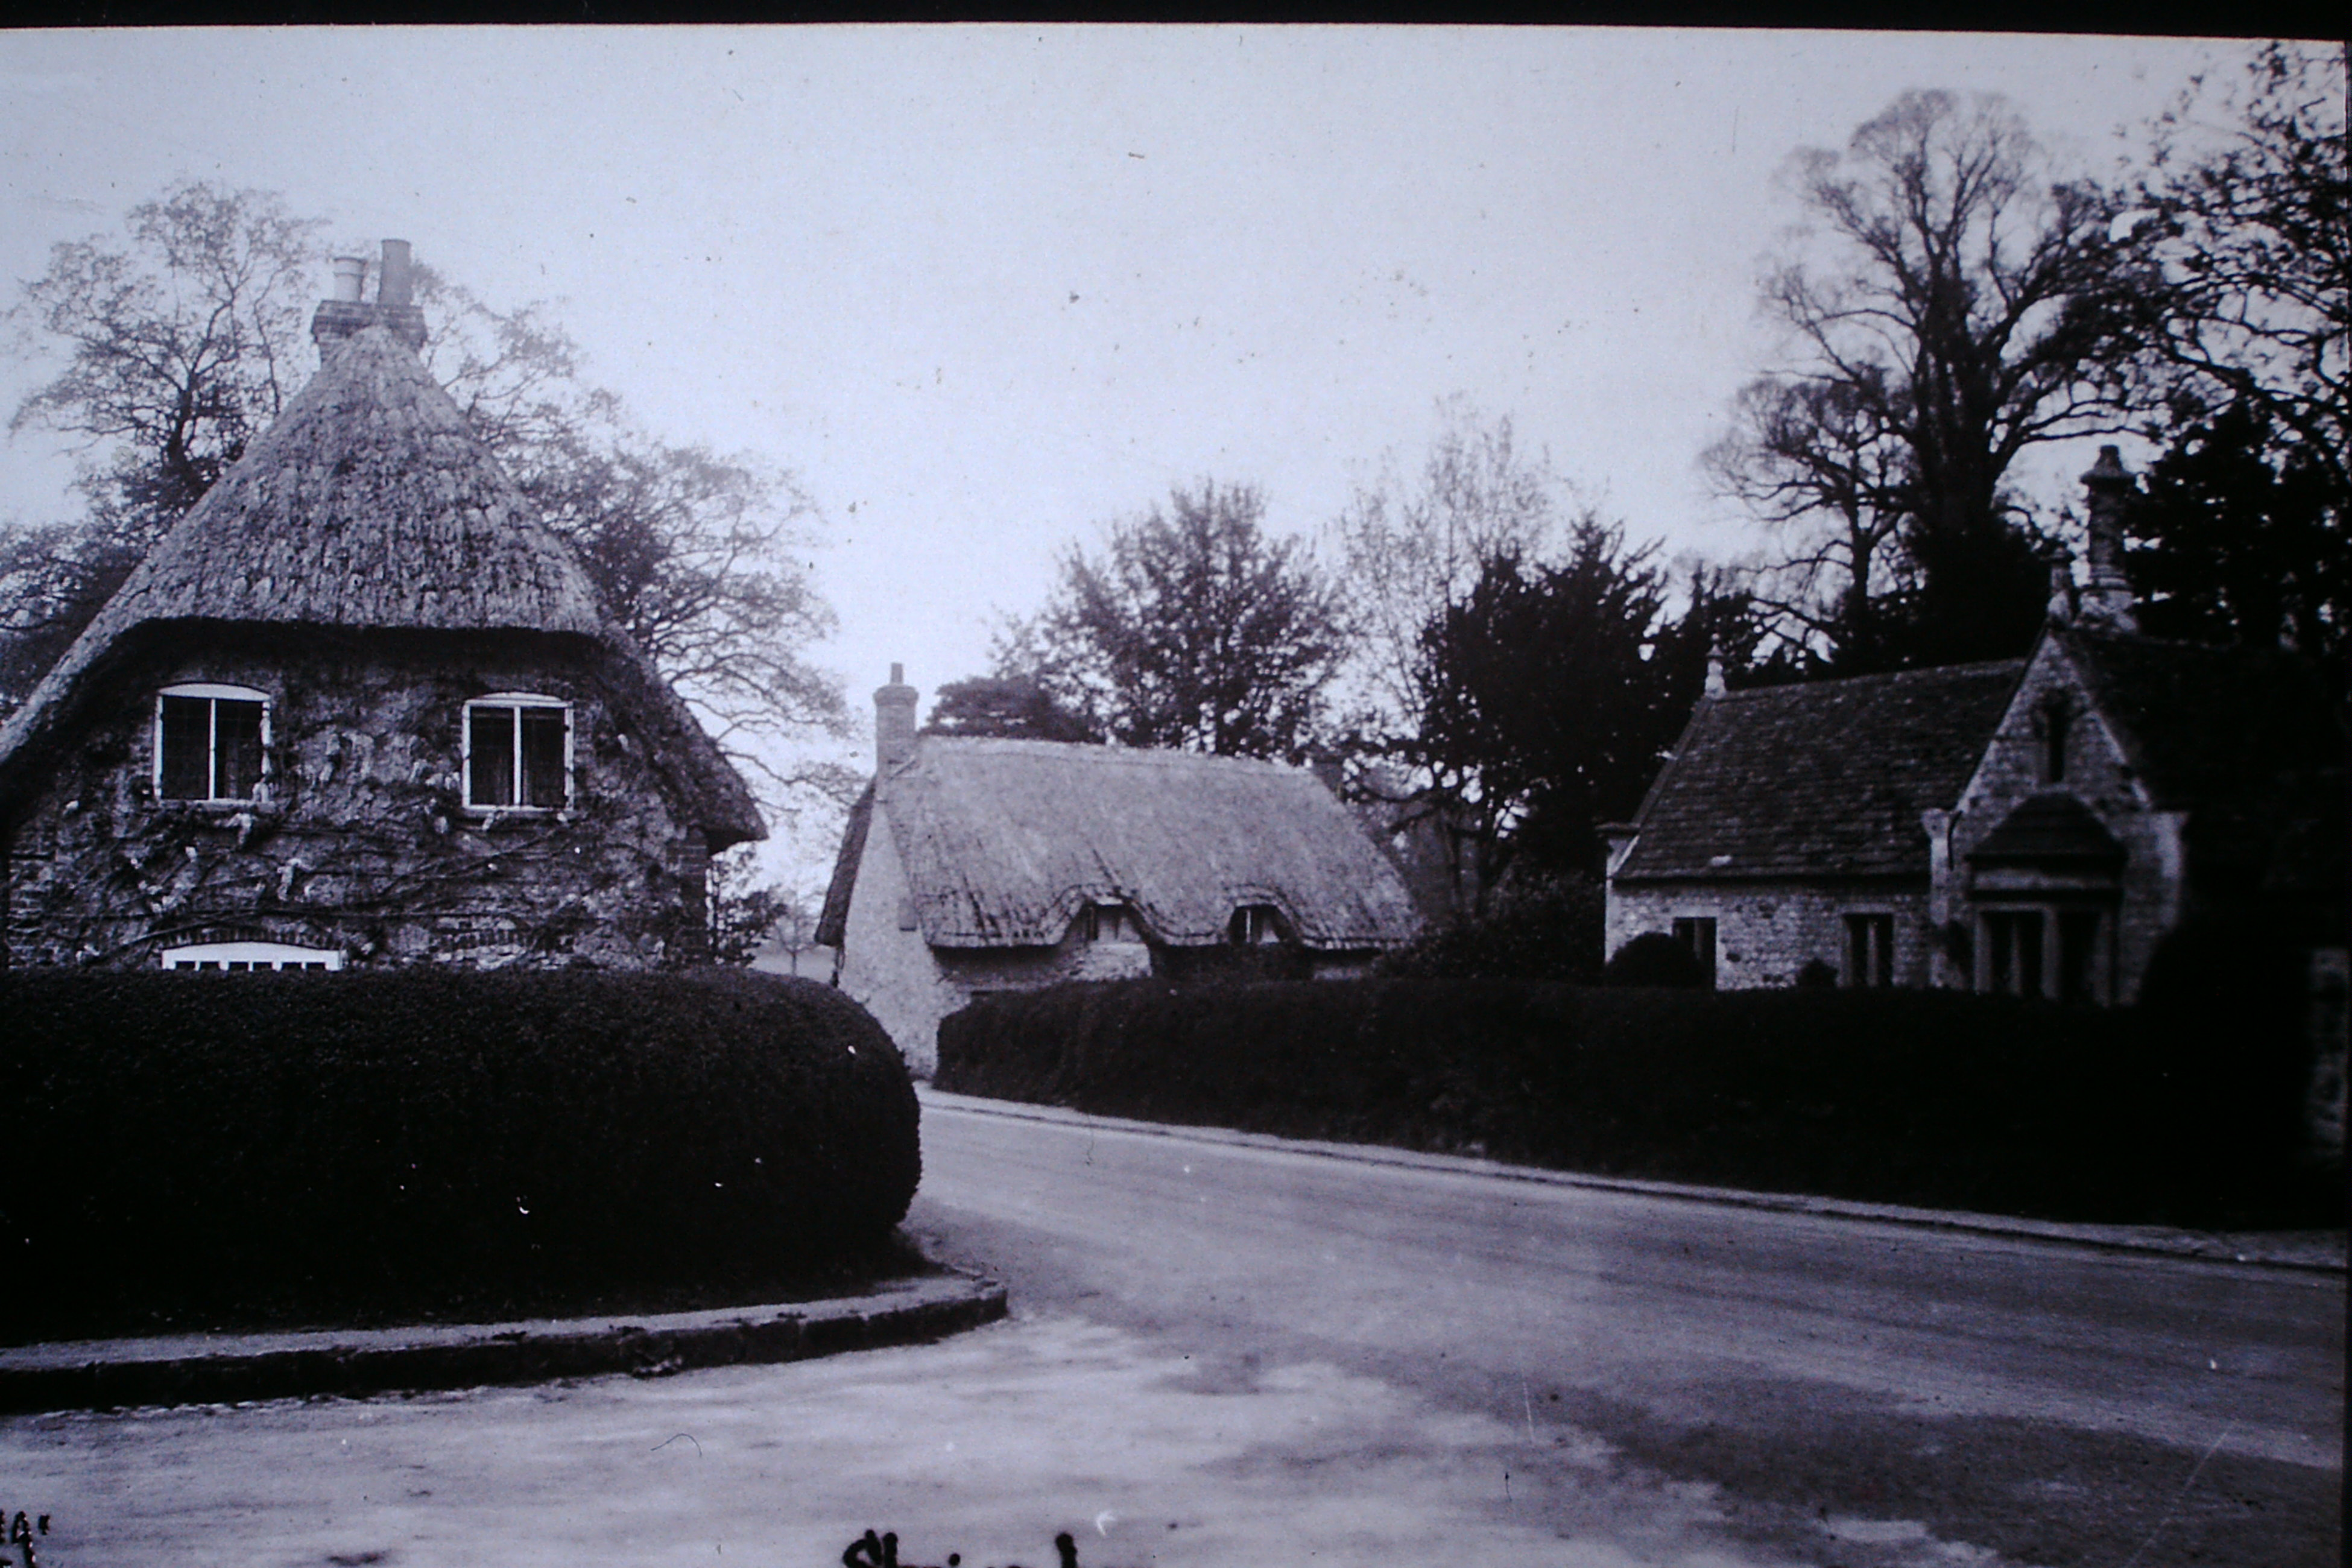 Wisteria Cottage on the left where Eve Weston was born